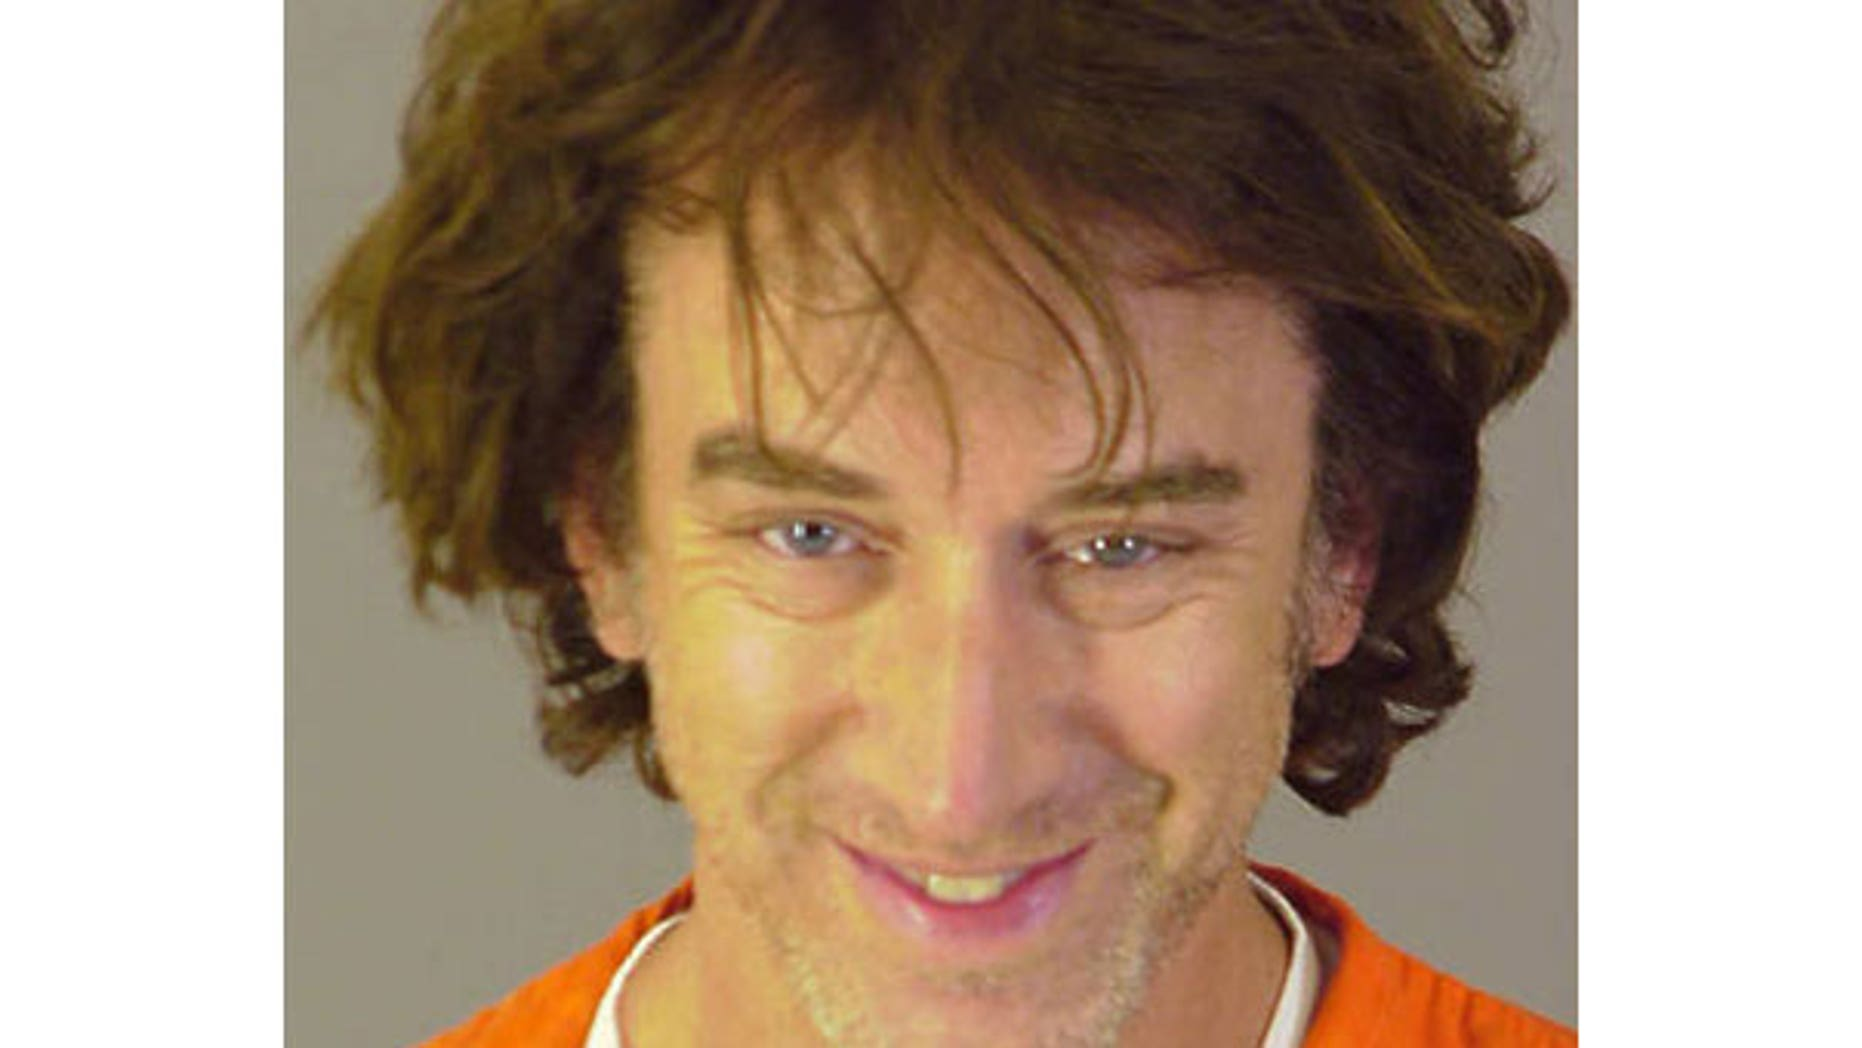 Andy dick latest arrest